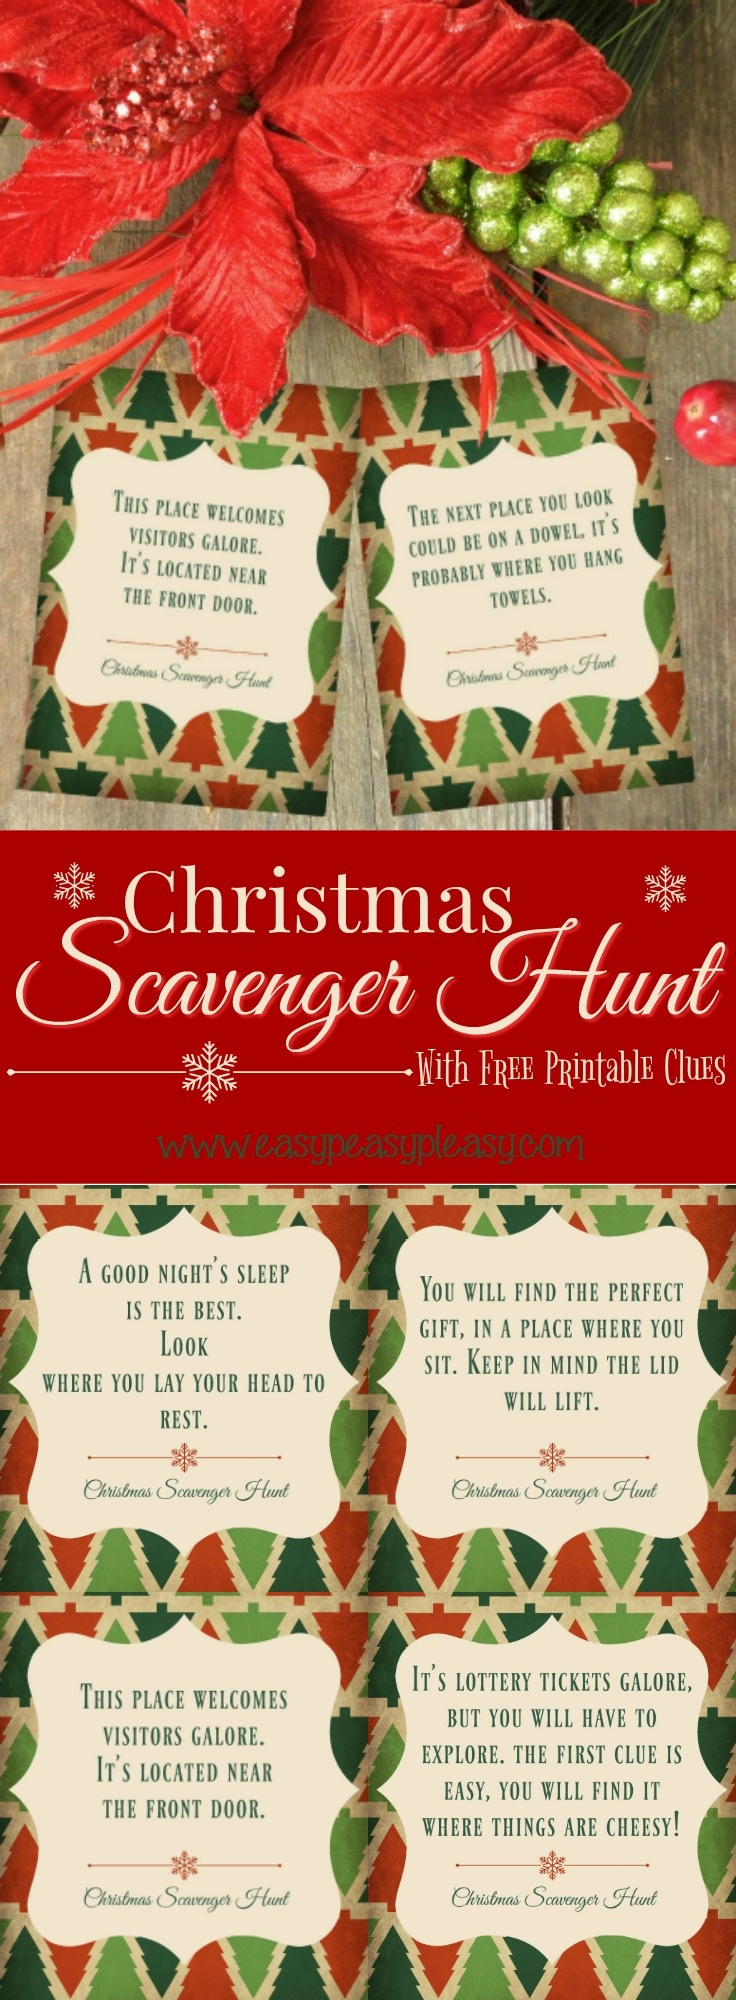 Christmas Scavenger Hunt With Free Printable Clues - Easy Peasy Pleasy - Free Printable Christmas Treasure Hunt Clues